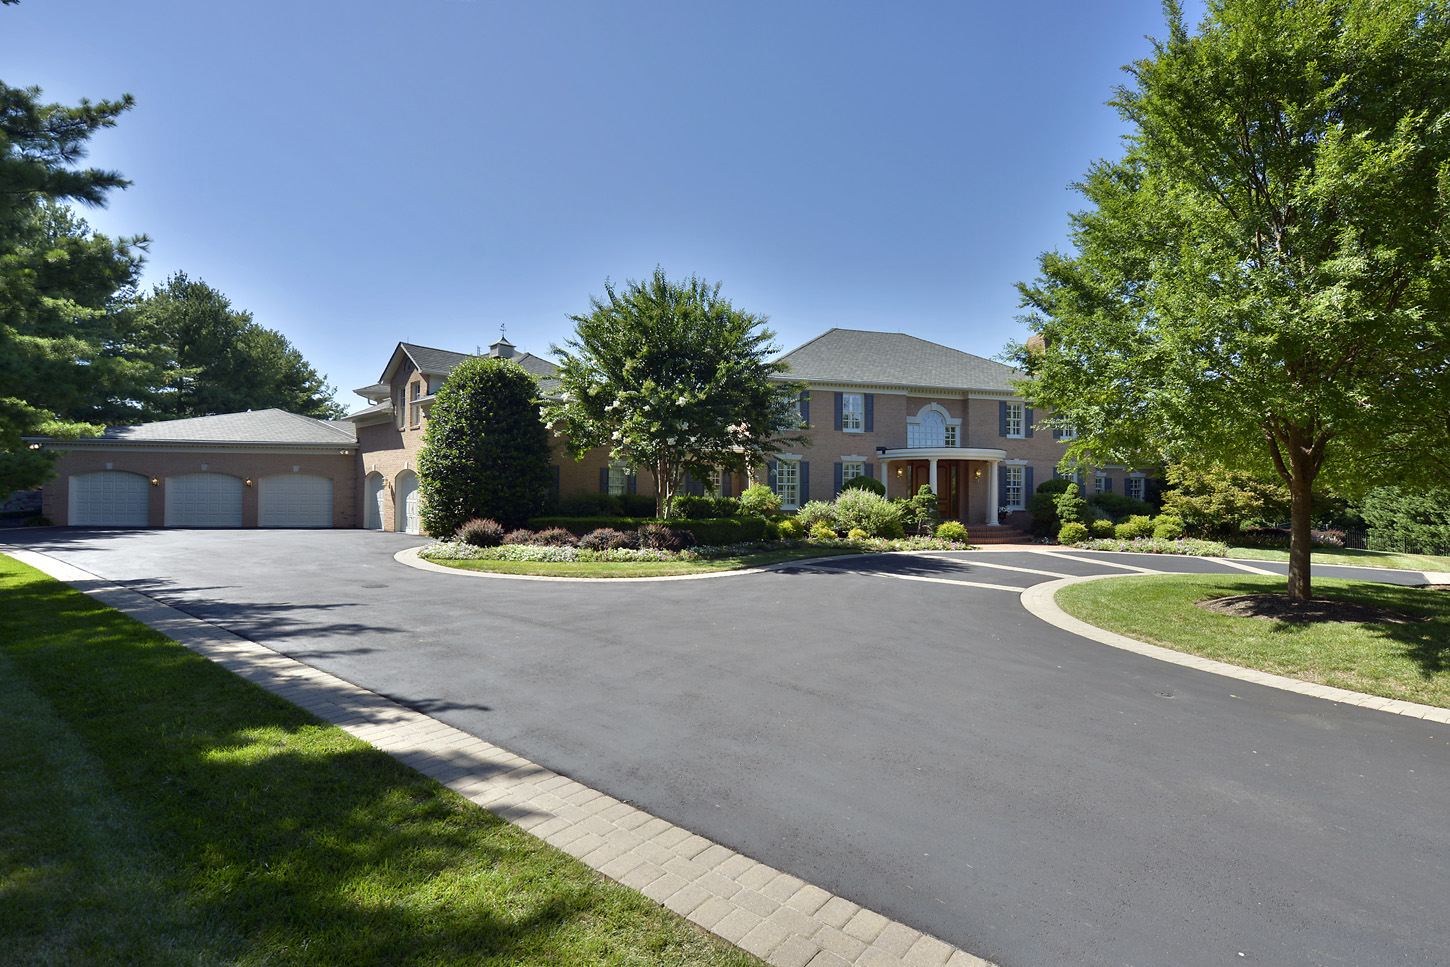 homevisit virtual tour: 8929 harvest square ct, potomac, md 20854